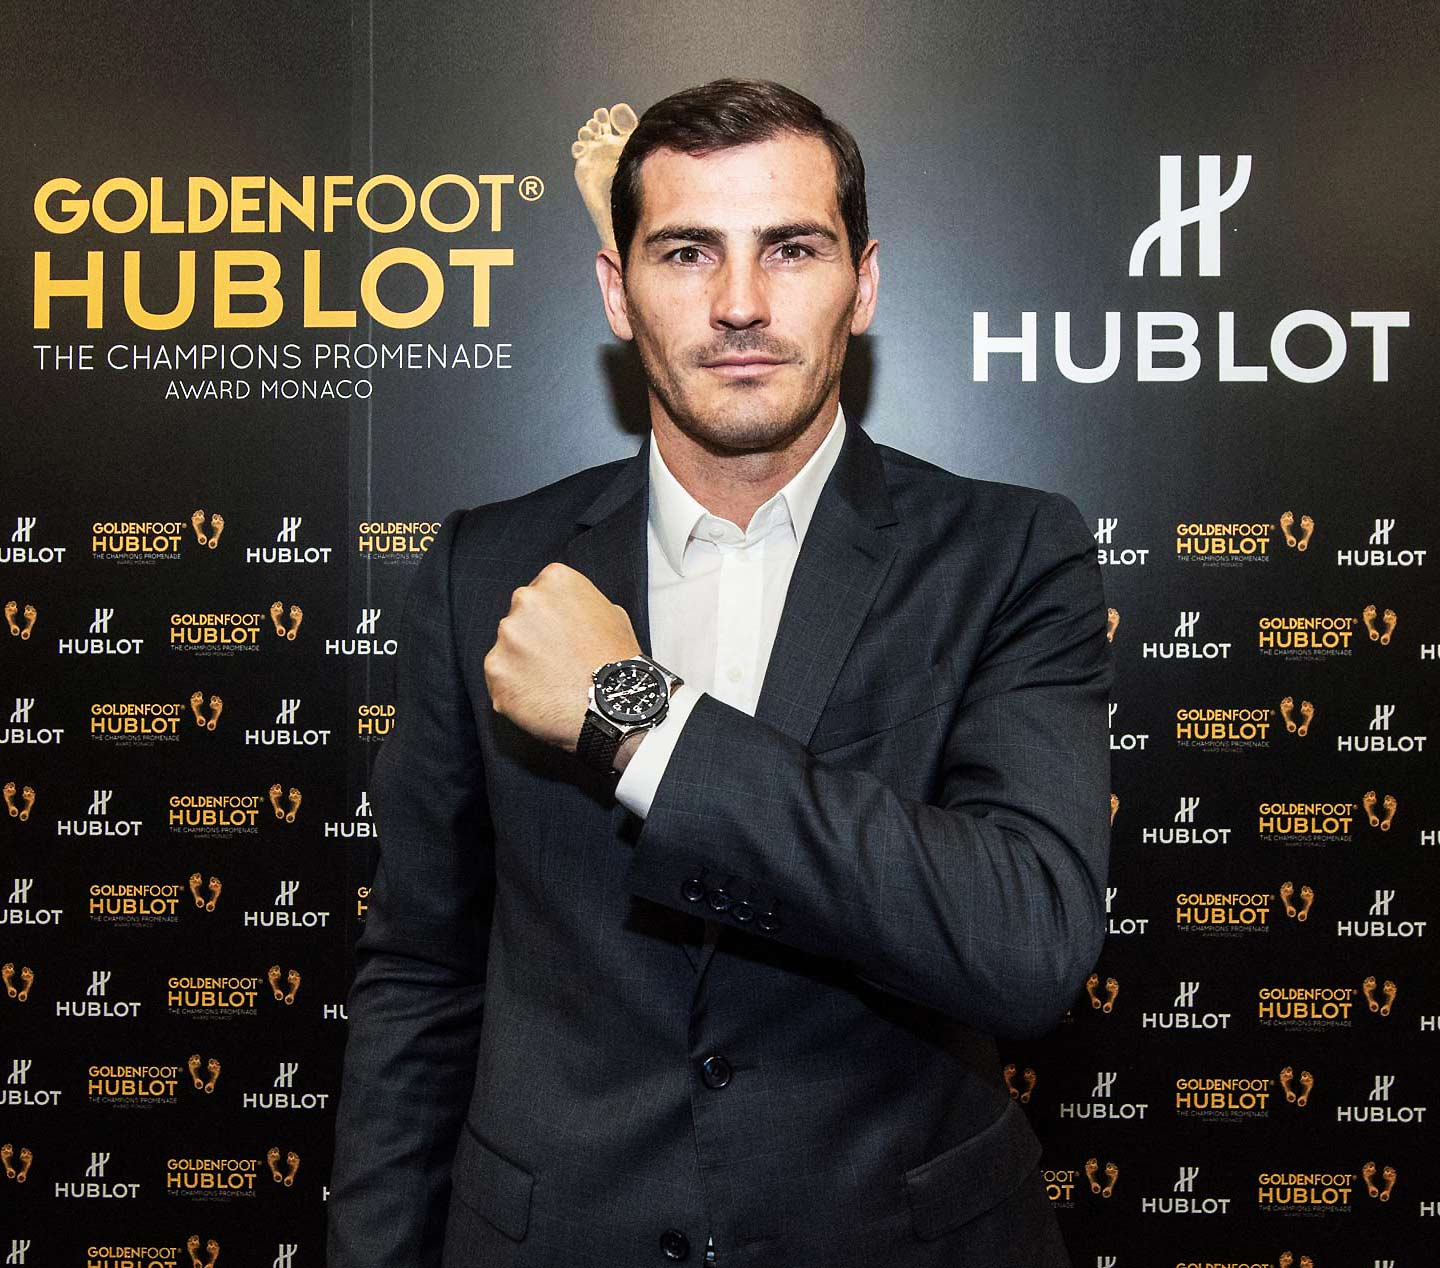 EVENTO: Iker Casillas gana el Hublot Golden Foot